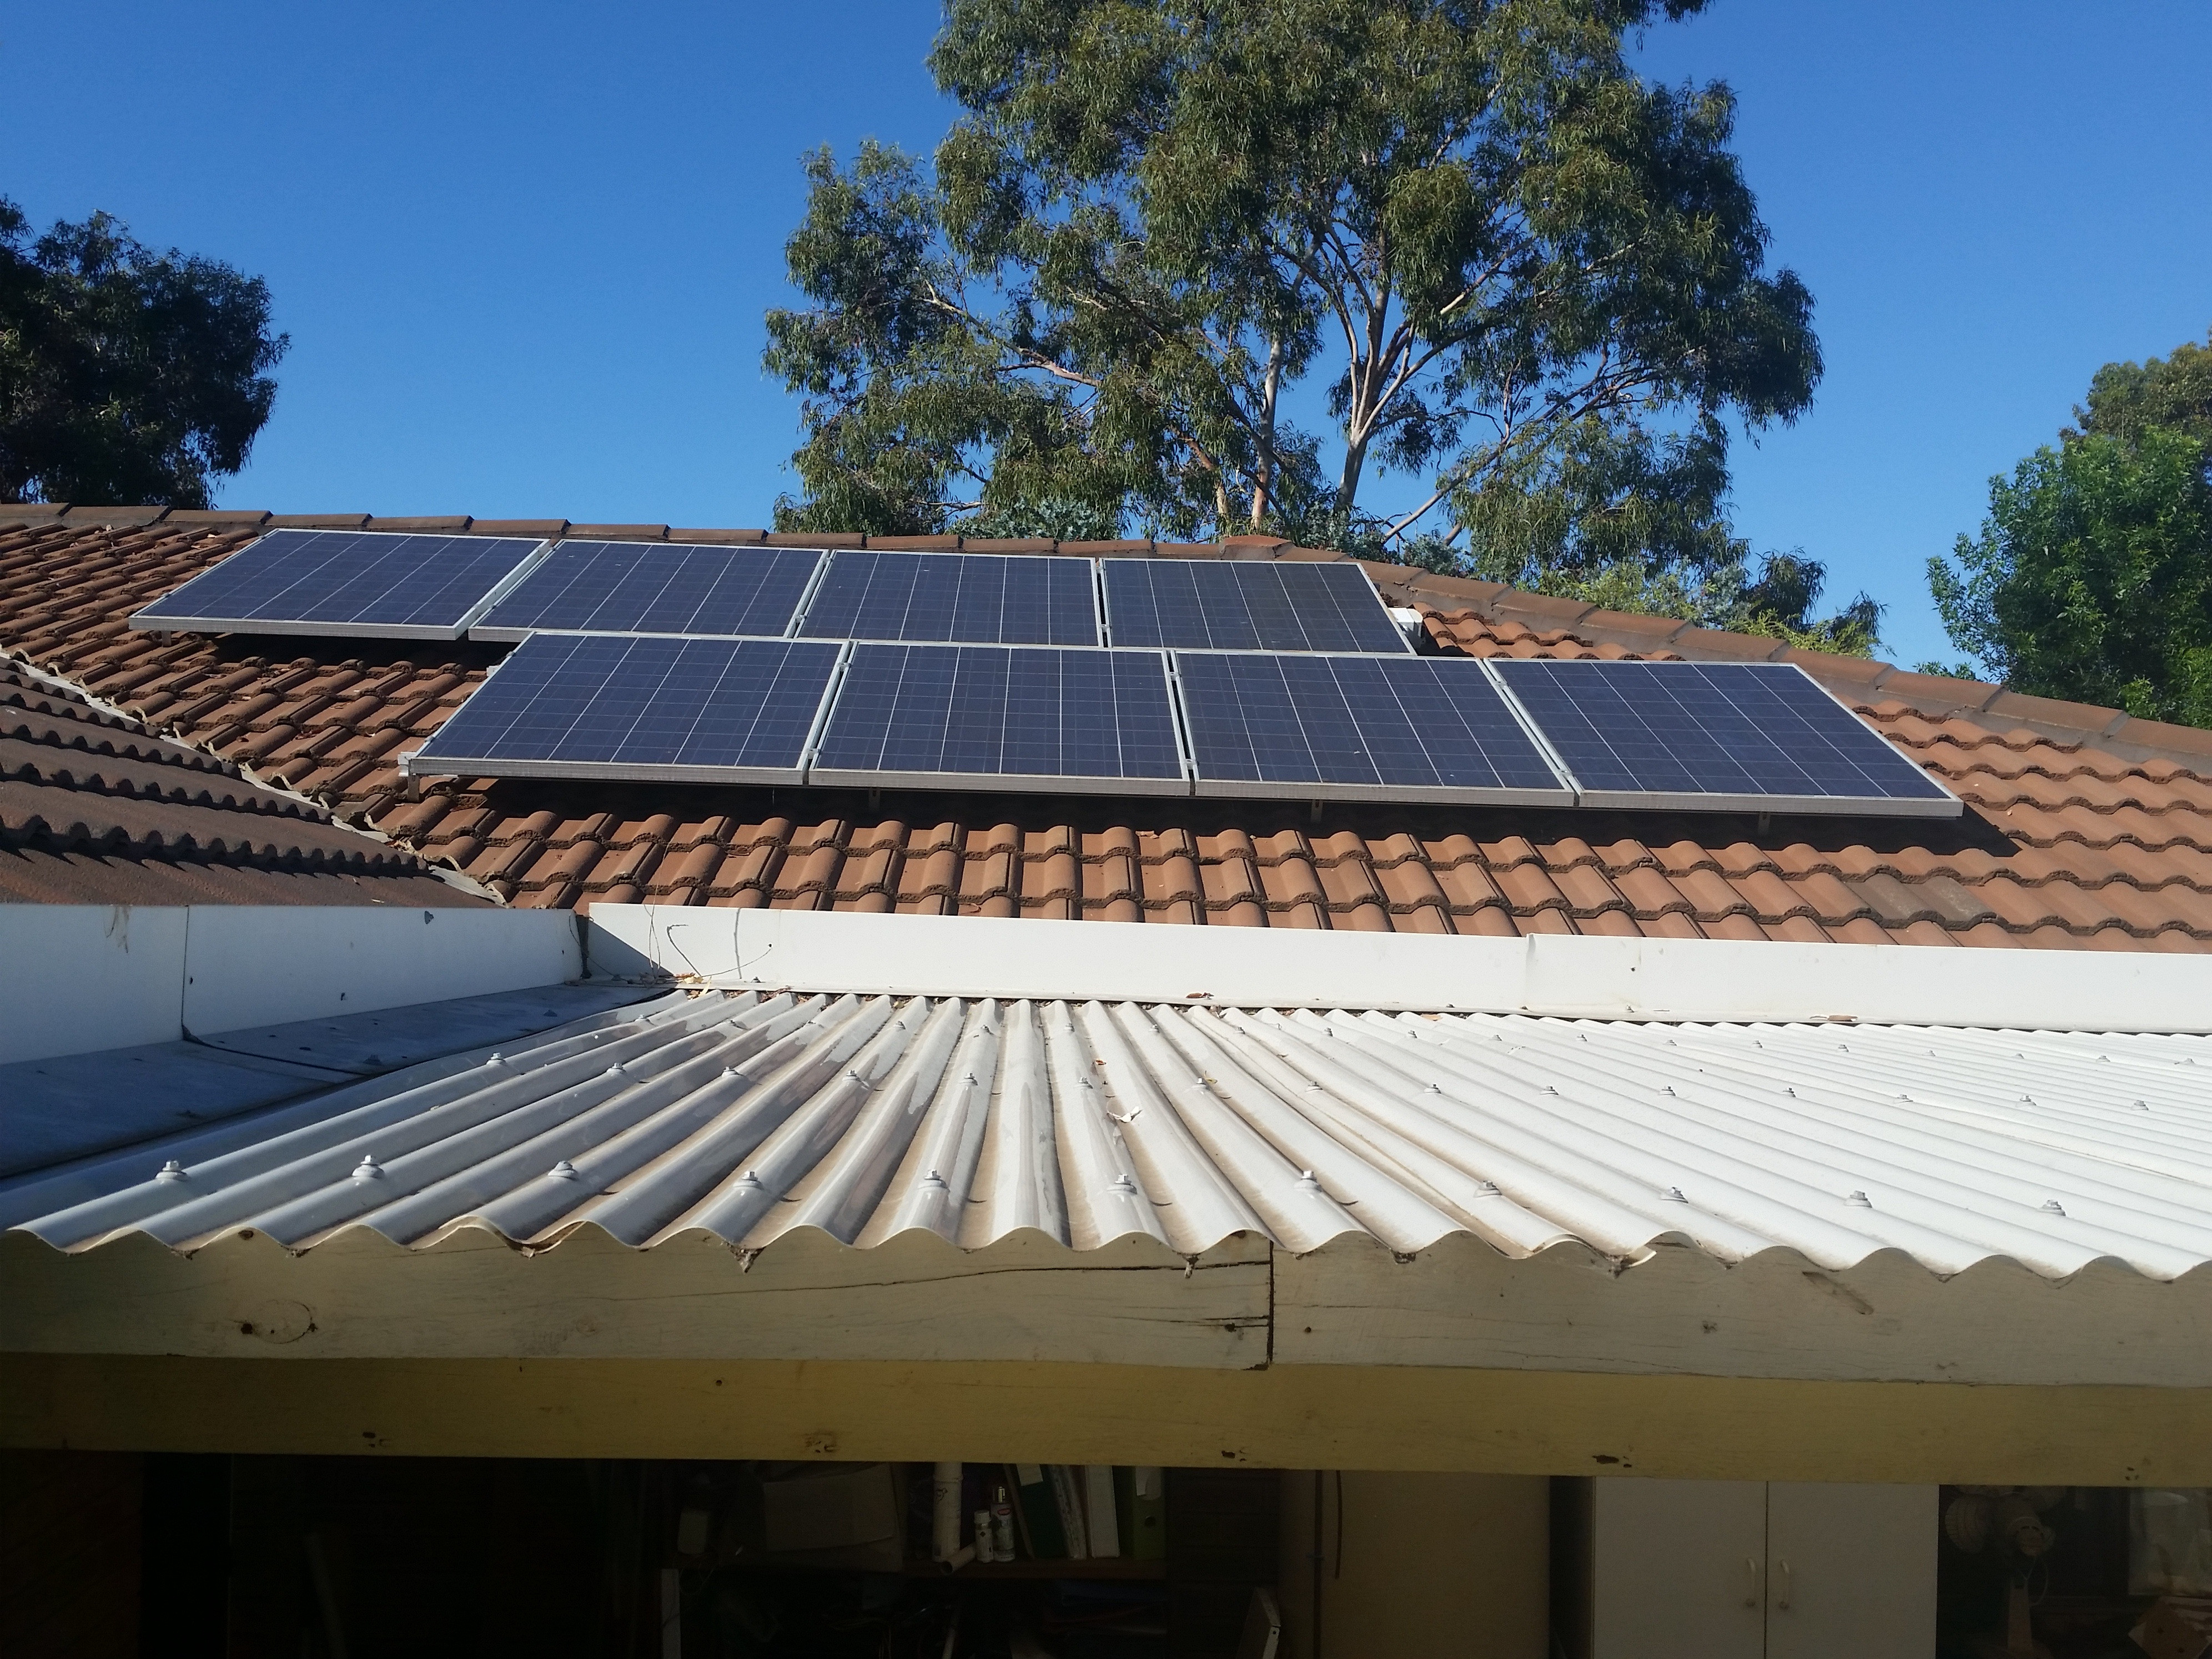 Solar panels on your house